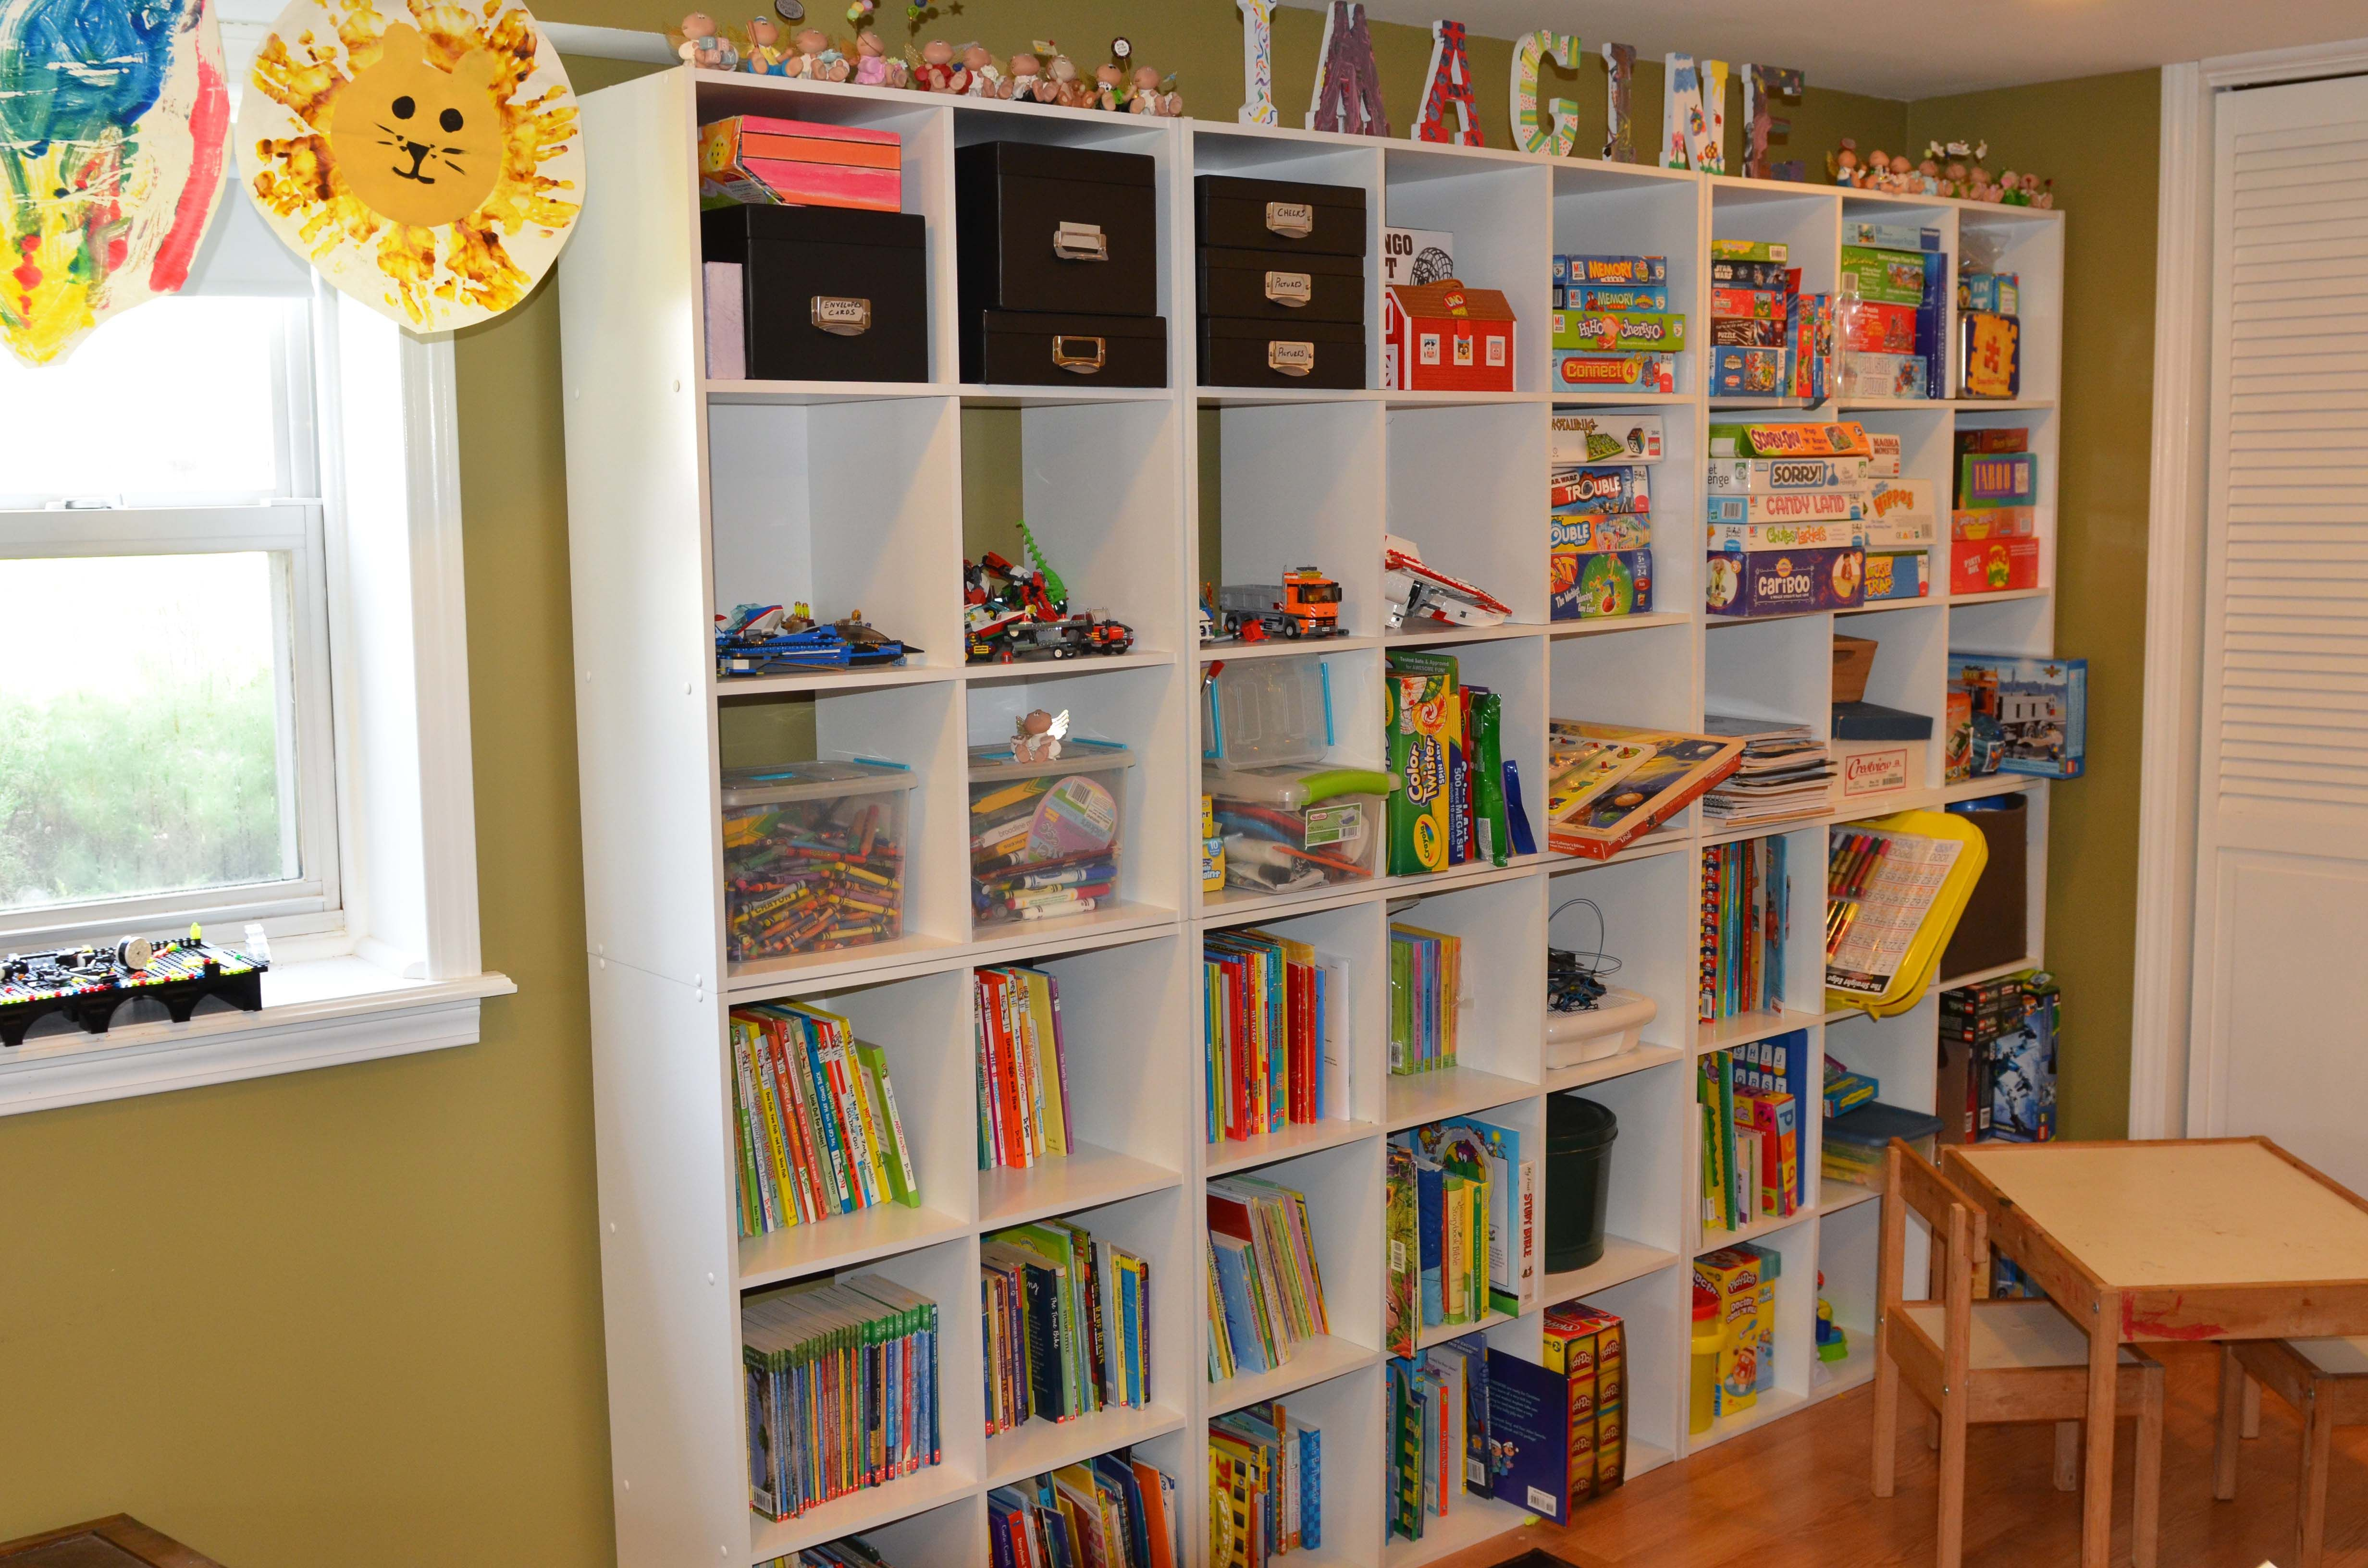 If you have a game room or recreation area in your home, it's important to have good lighting. Andrew and Riley's book, art supplies, and game storage ...